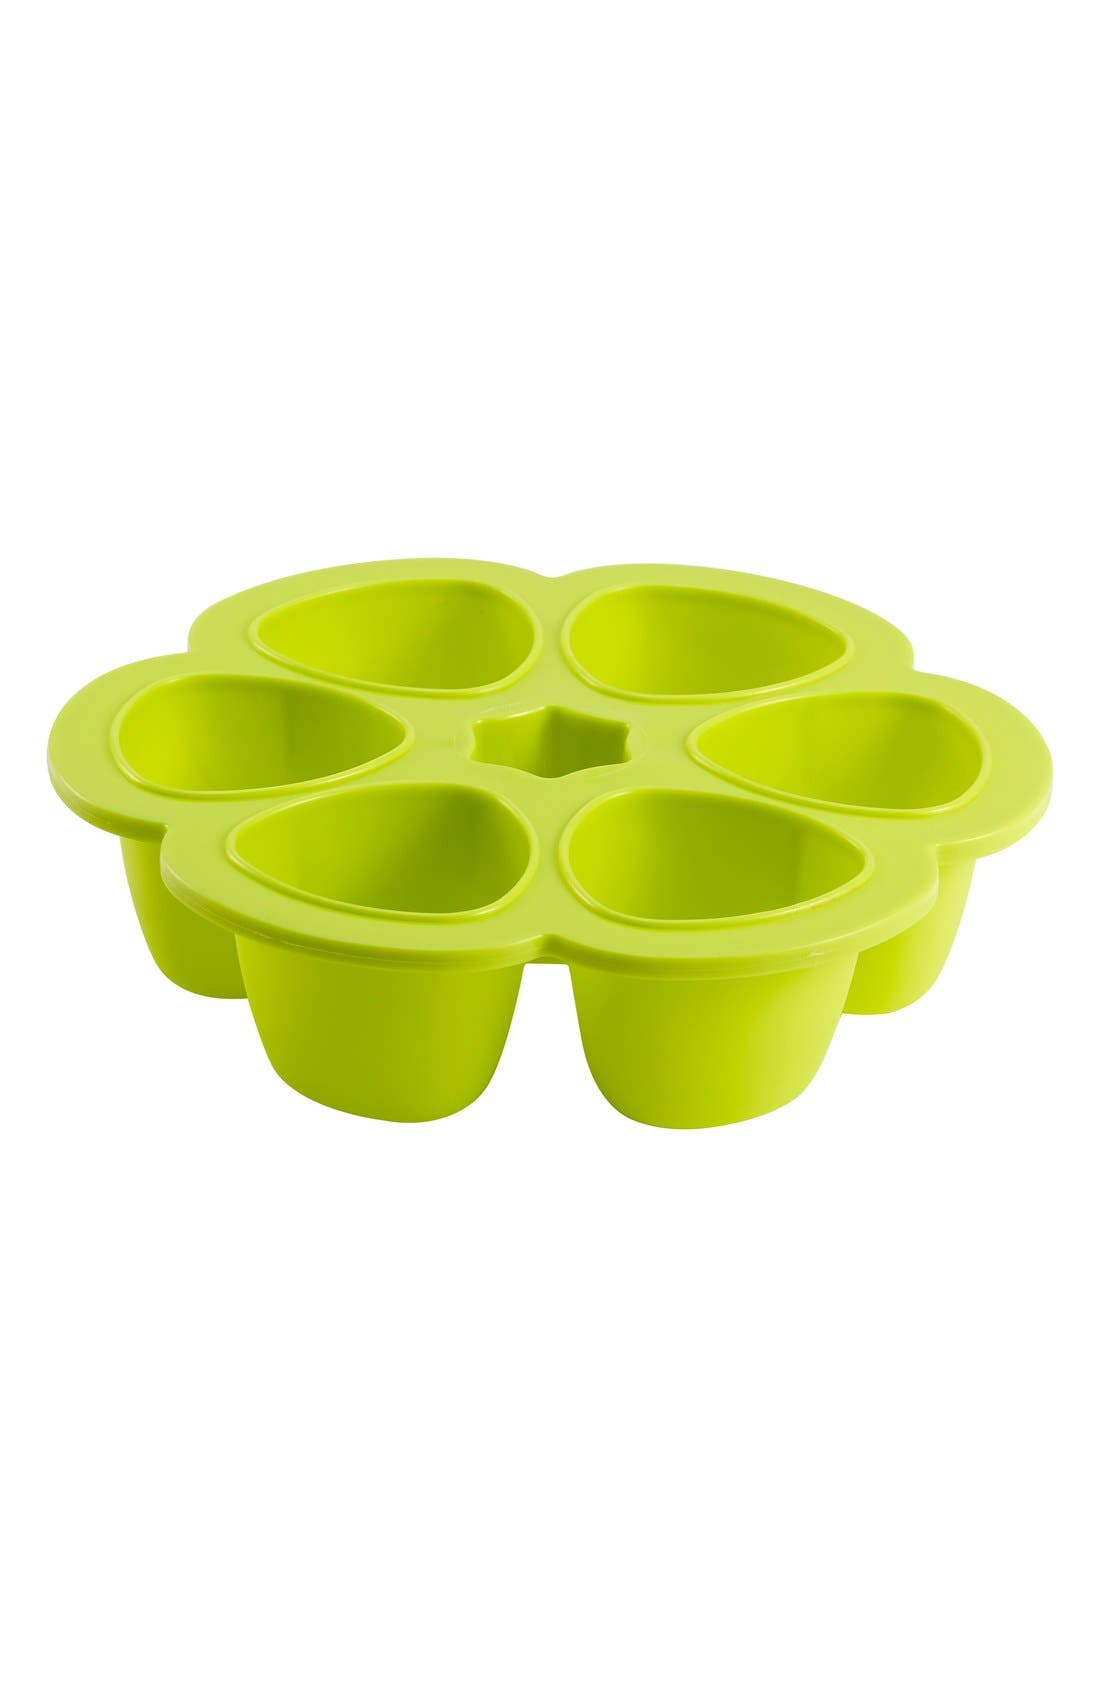 Main Image - BÉABA 'Multiportions' 3 oz. Food Cup Tray